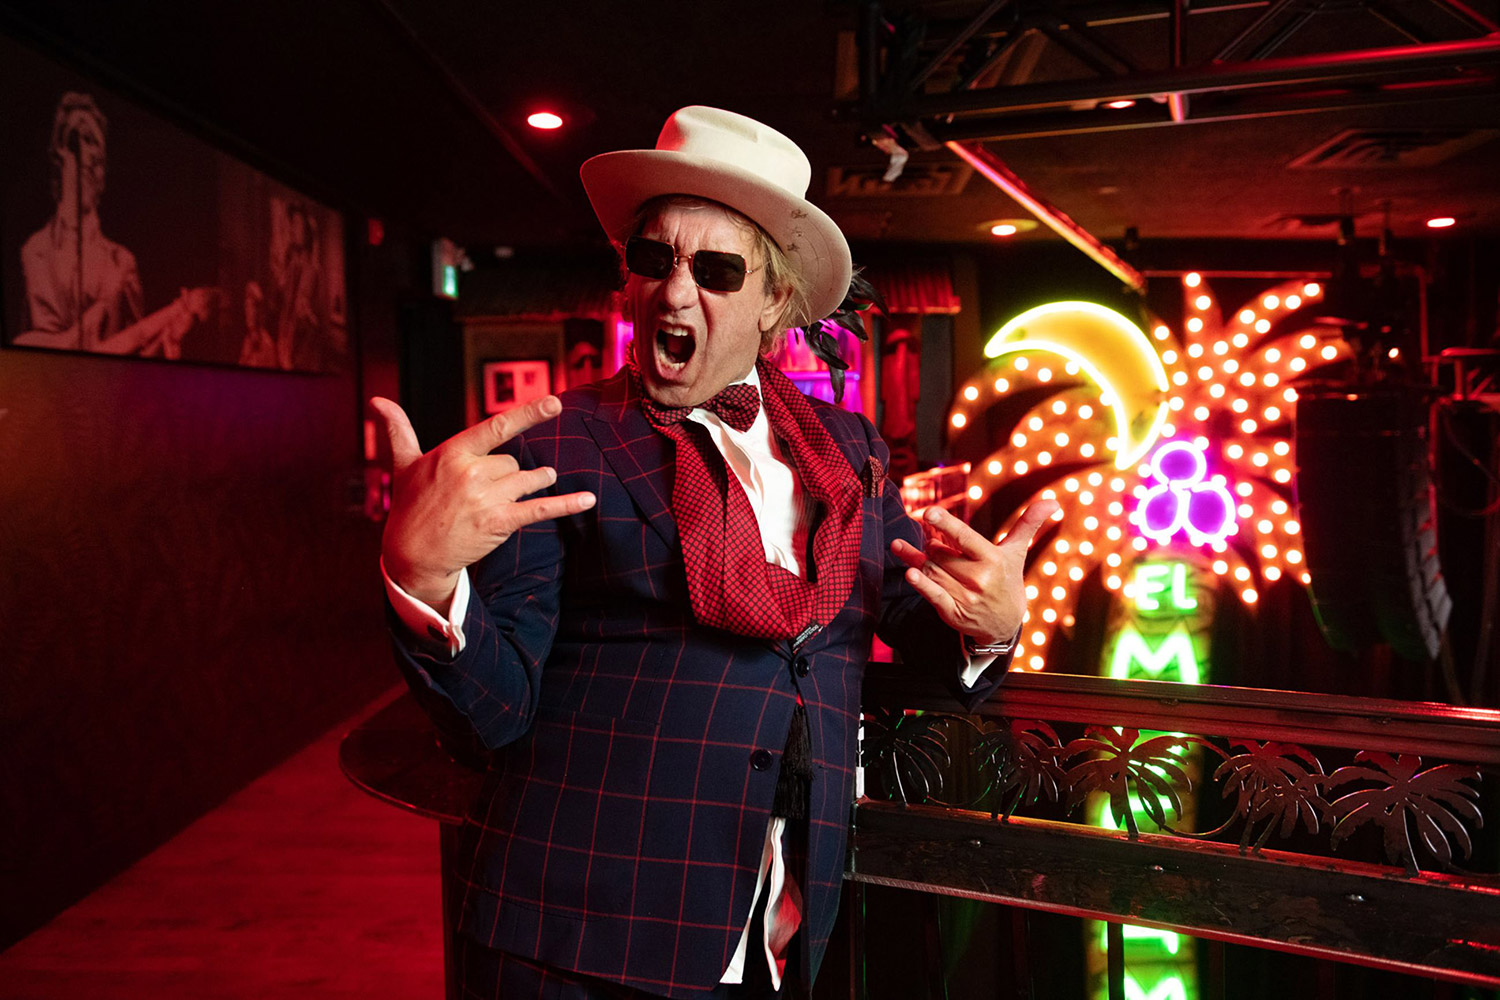 Michael Wekerle, owner of El Mocambo, commissioned WSDG for the renovation of the club.